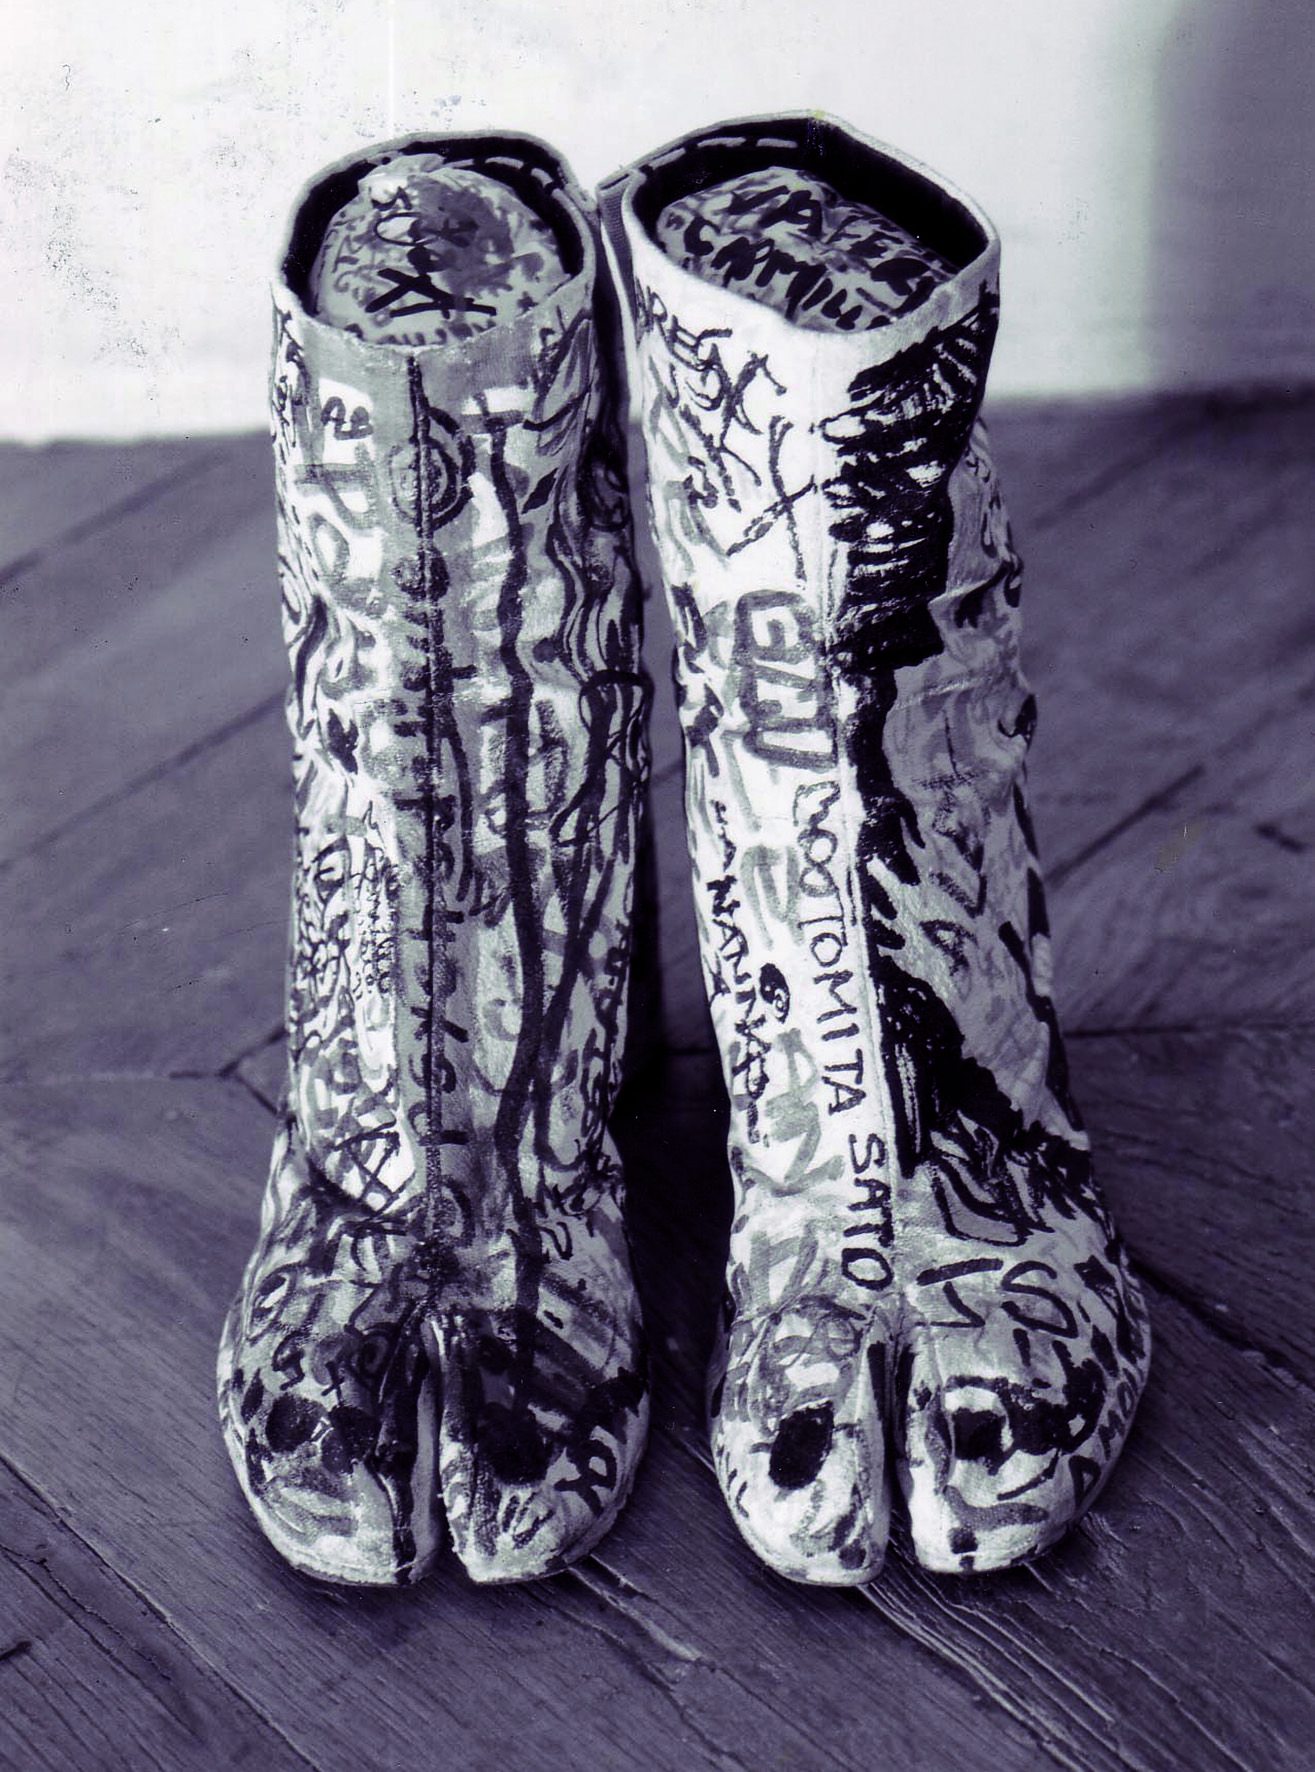 Martin Margiela | well that gives new meaning to the phrase